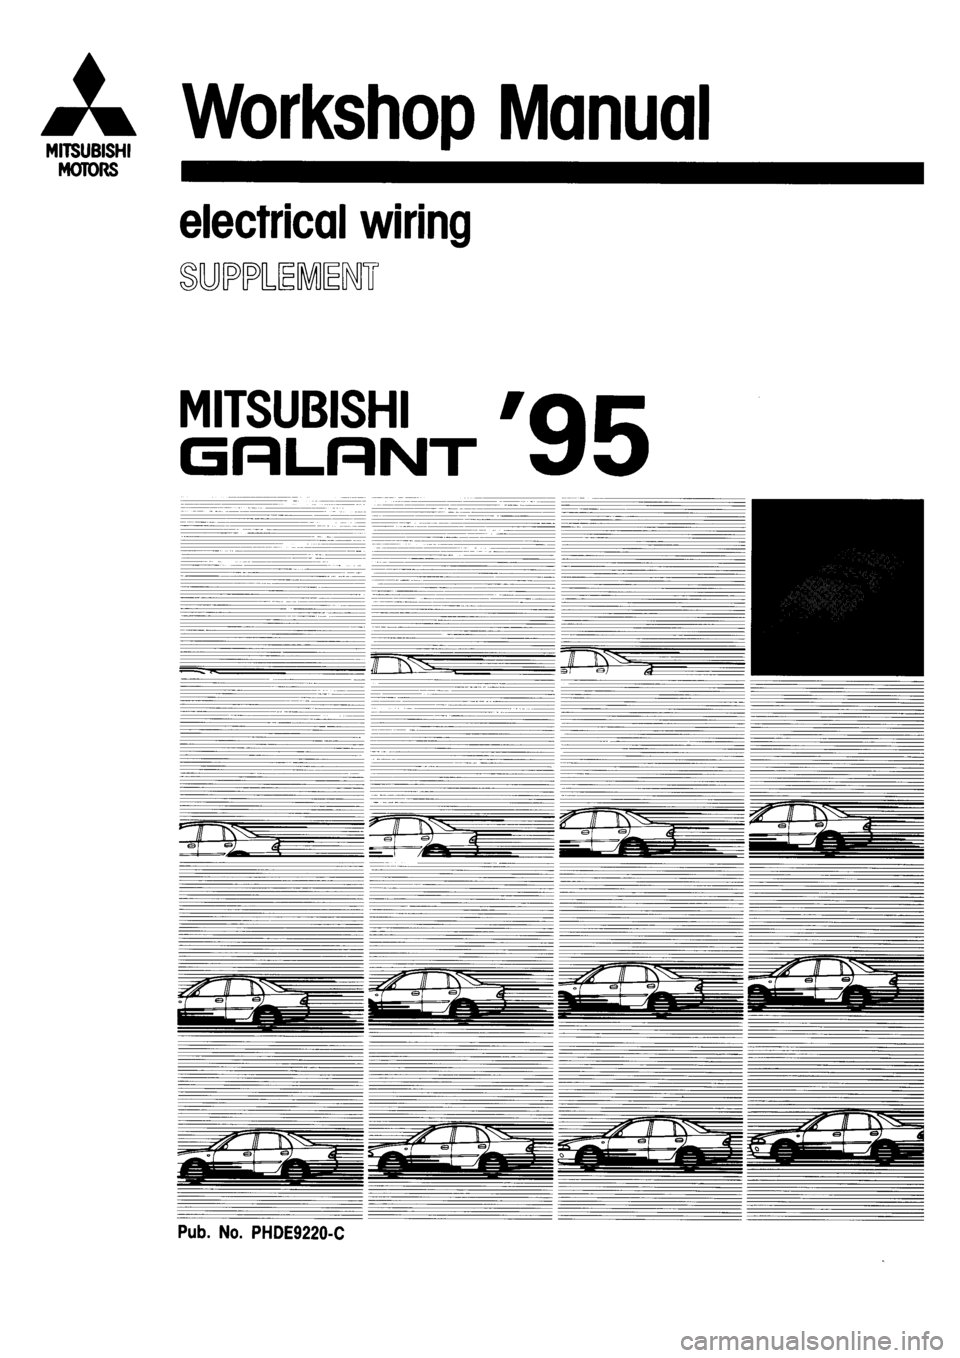 ... w960_7431 0 mitsubishi galant 1995 7 g electrical wiring diagram  workshop manual mitsubishi galant wiring diagram